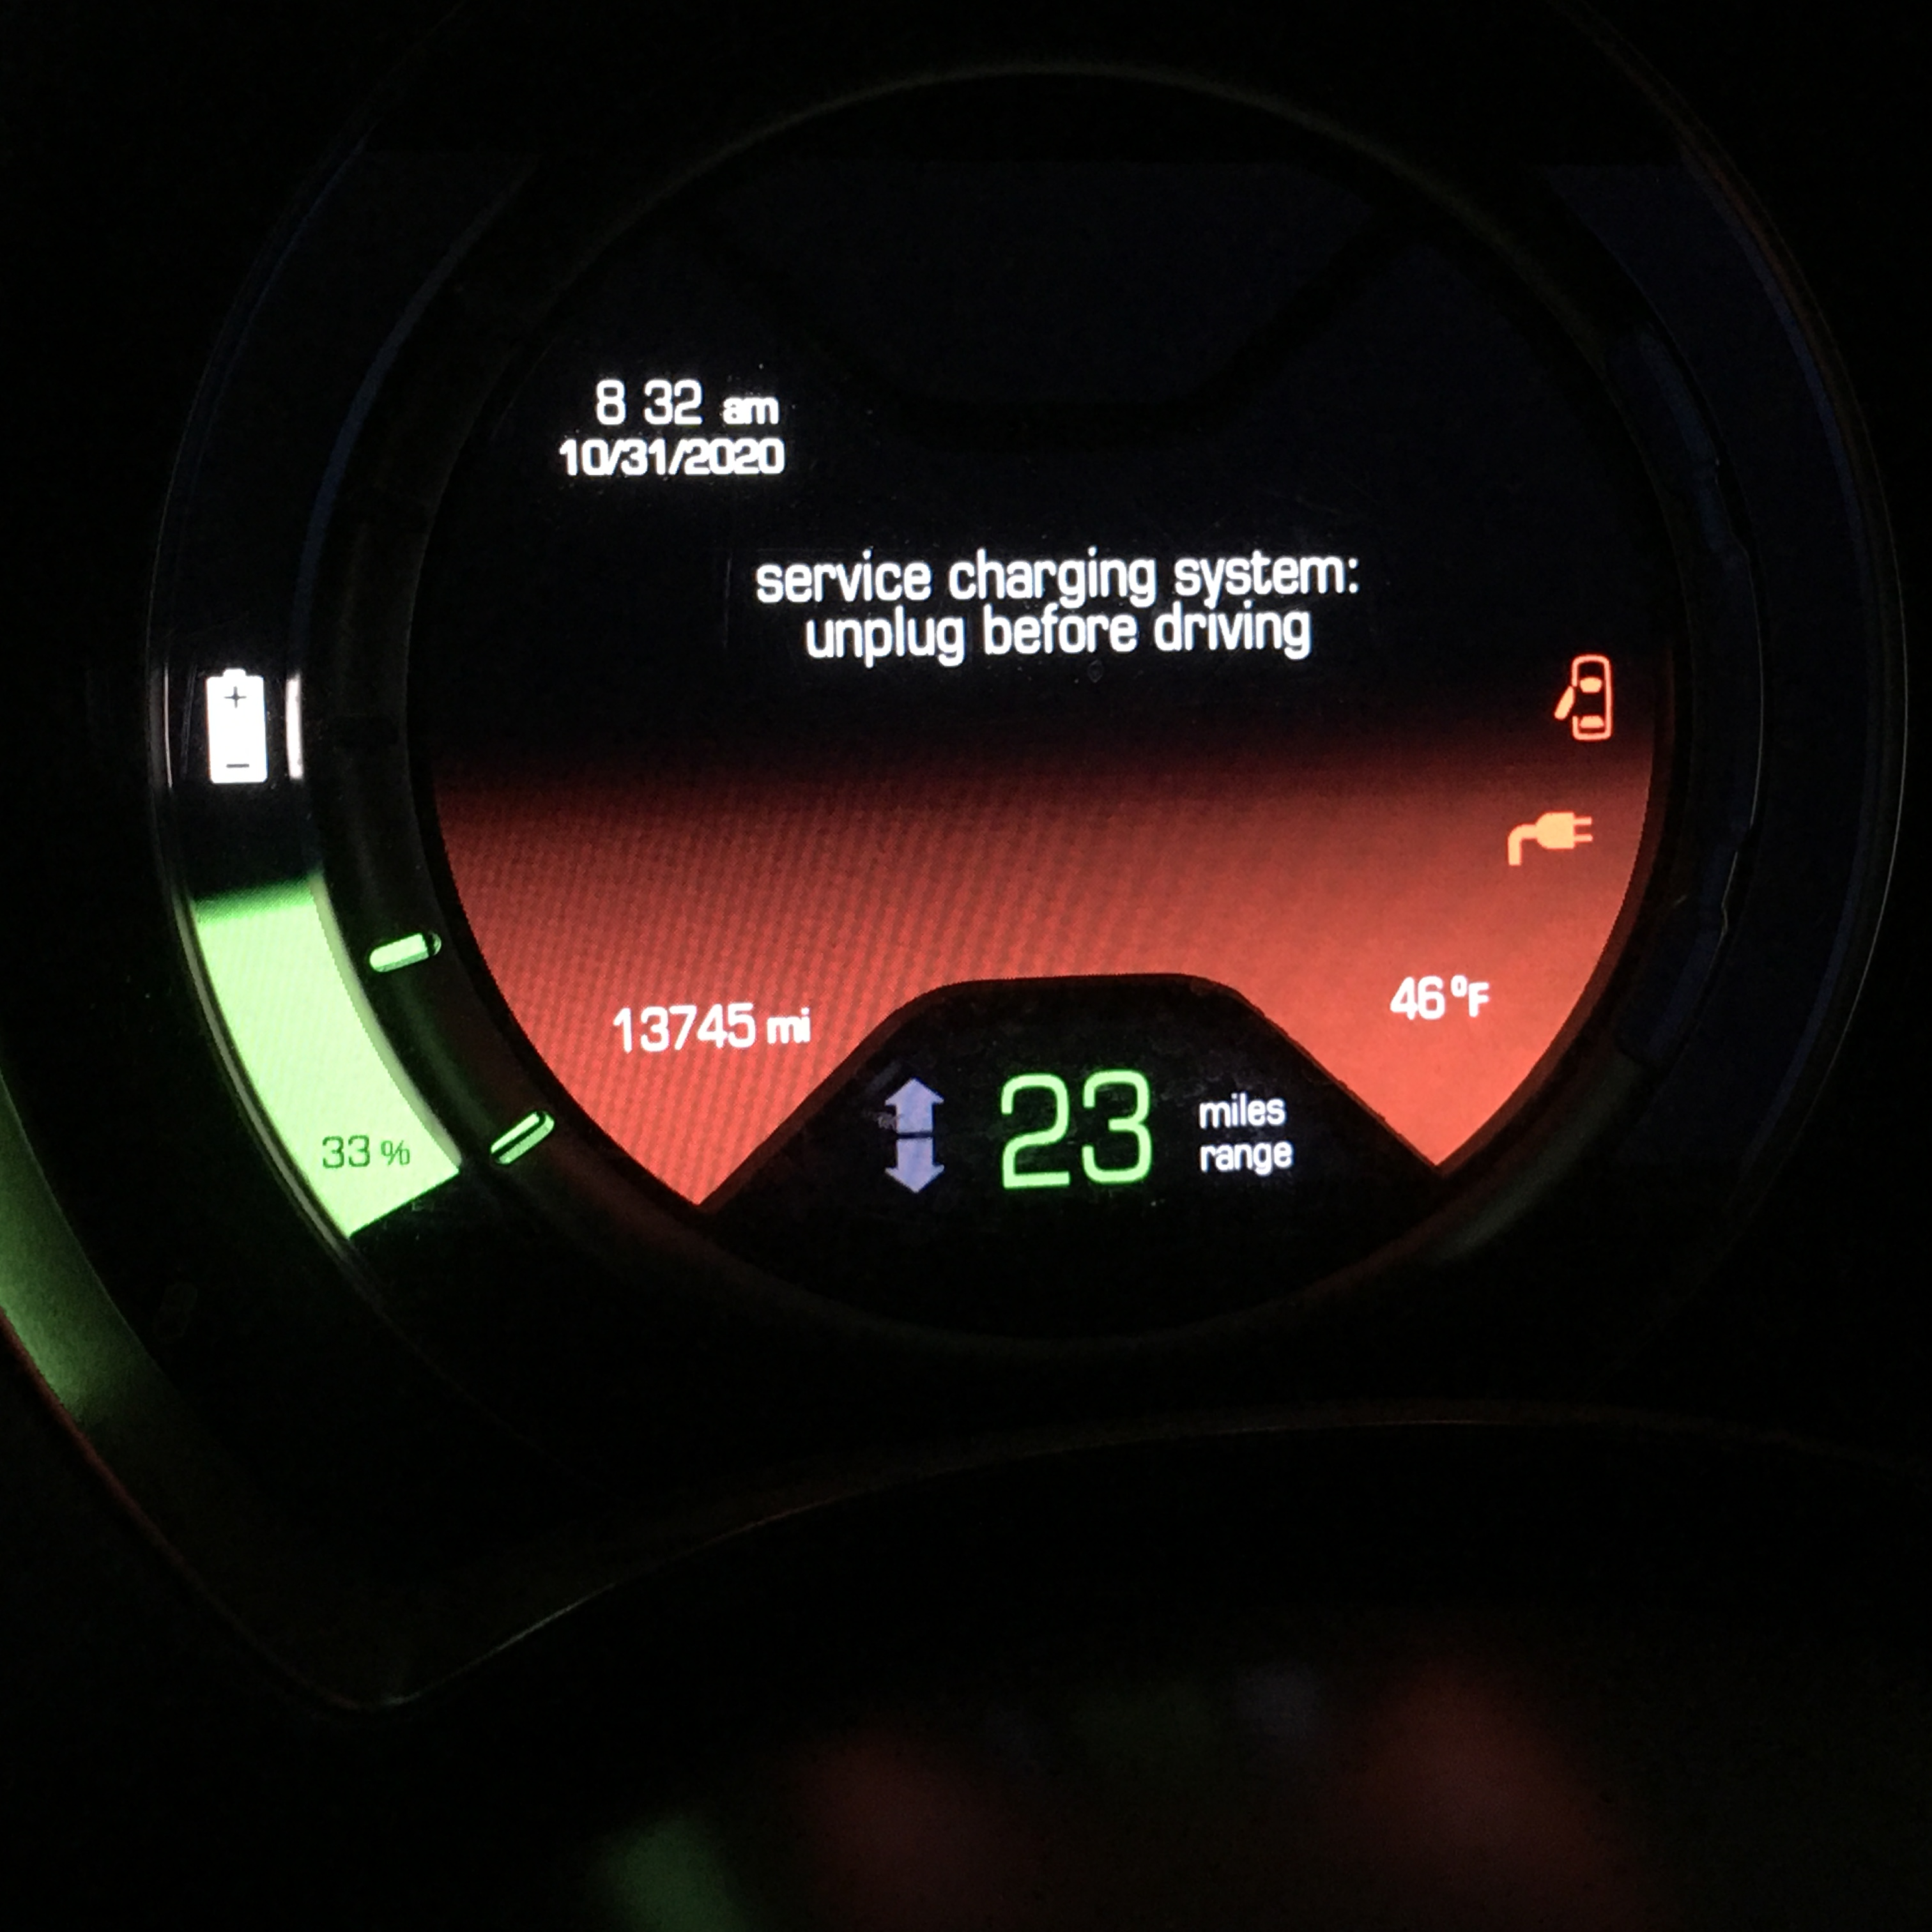 Service Charging System in Fiat 500e